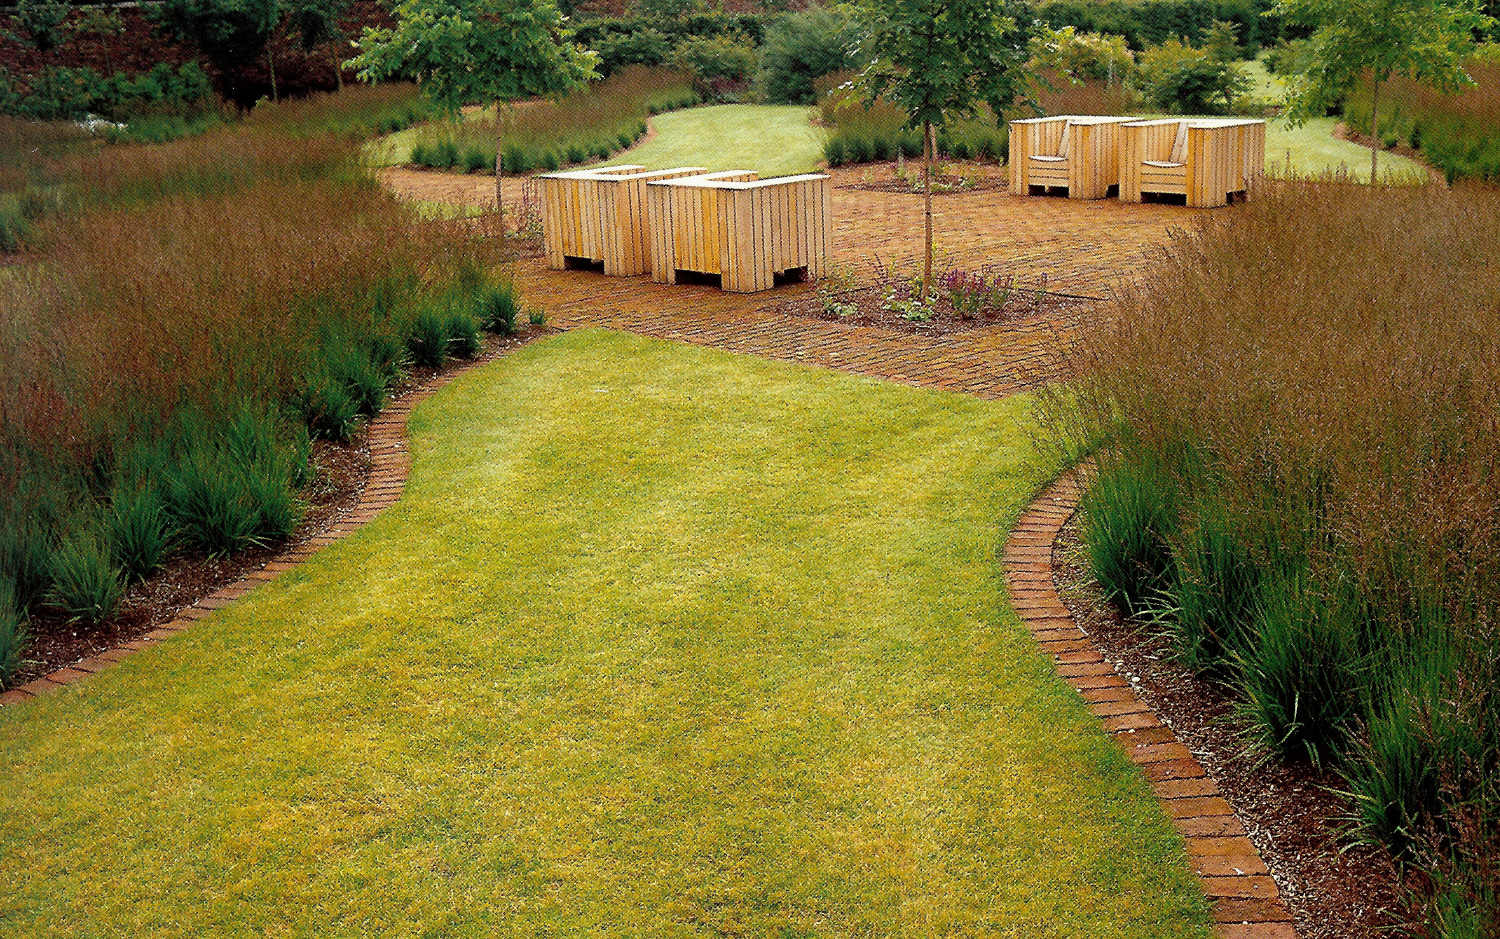 walled gardens - section of the Scampston walled garden planted with beds of purple moor grass and brick seating areas - House & Garden via Atticmag